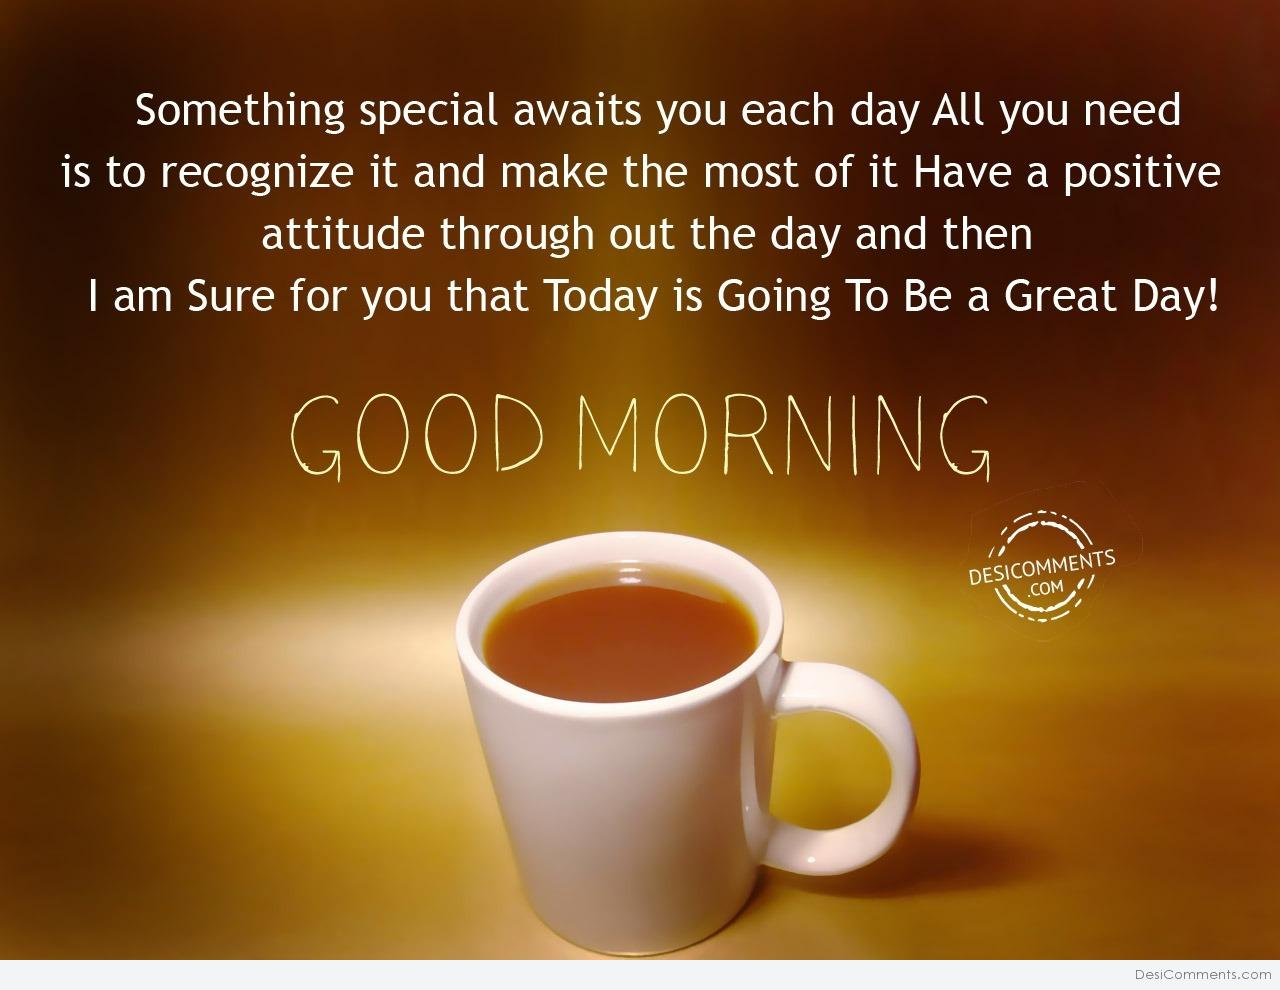 Have A Positive Attitude Good Morning Desicommentscom